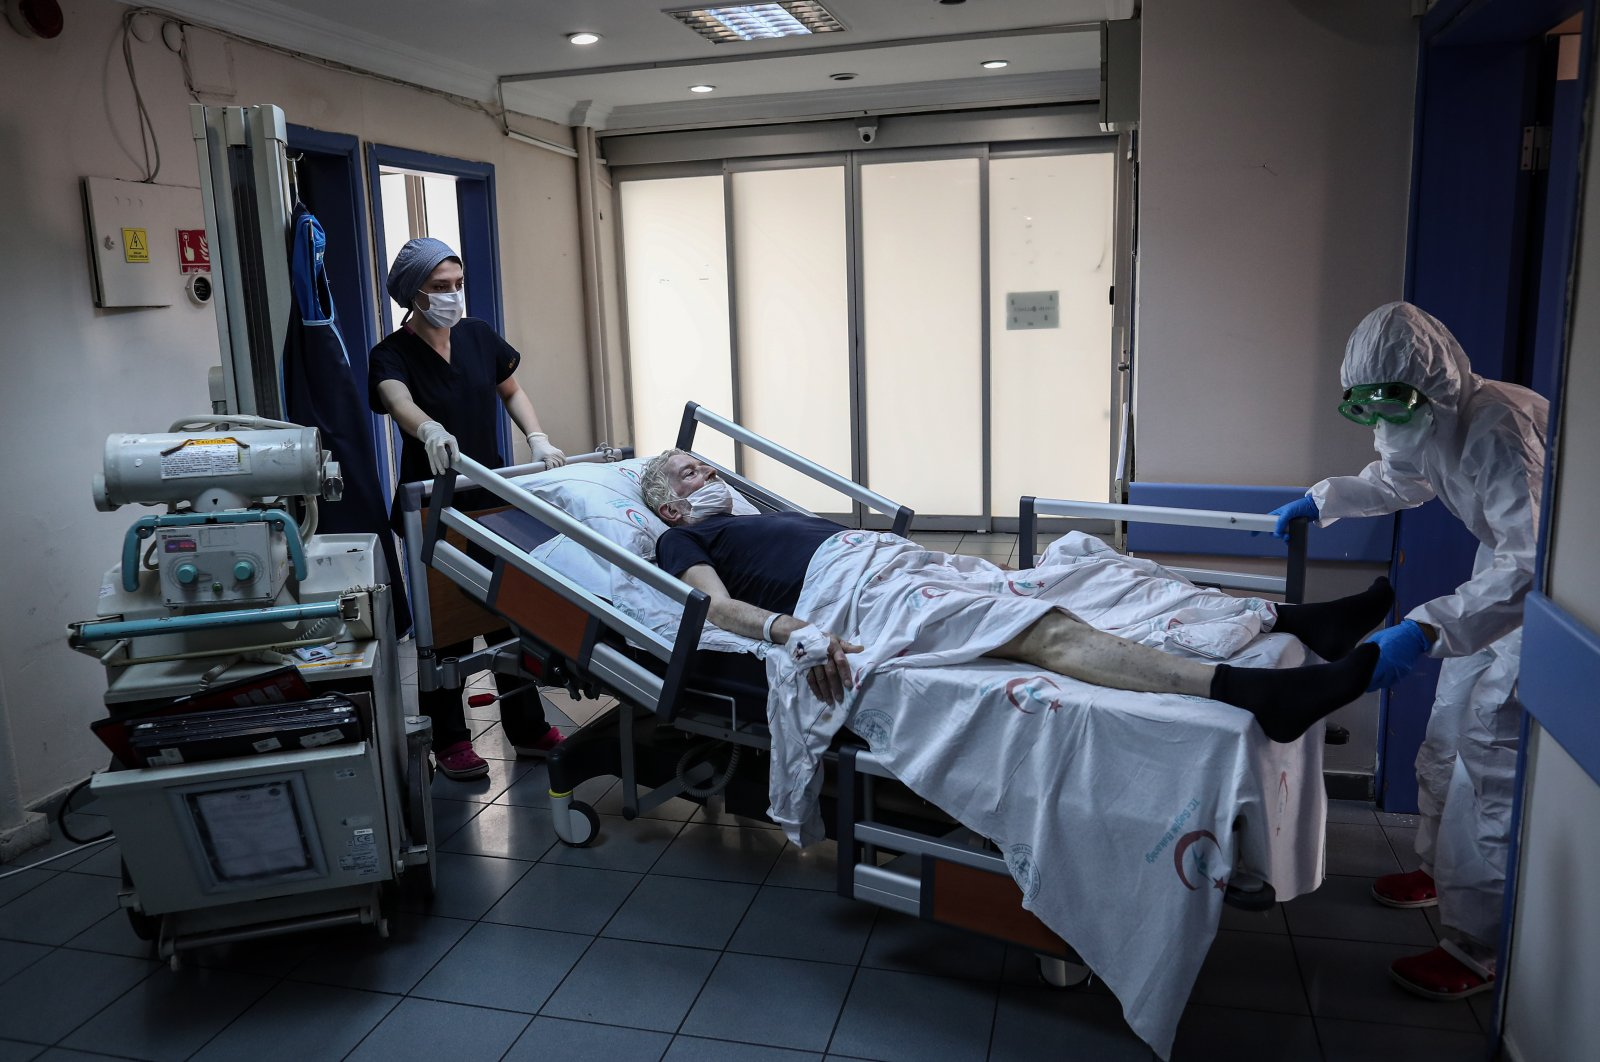 Medical workers push a bed with a patient reportedly infected with COVID-19, at the Istanbul Şişli Hamidiye Etfal Training and Research Hospital, in Istanbul, May 20, 2020. (EPA Photo)